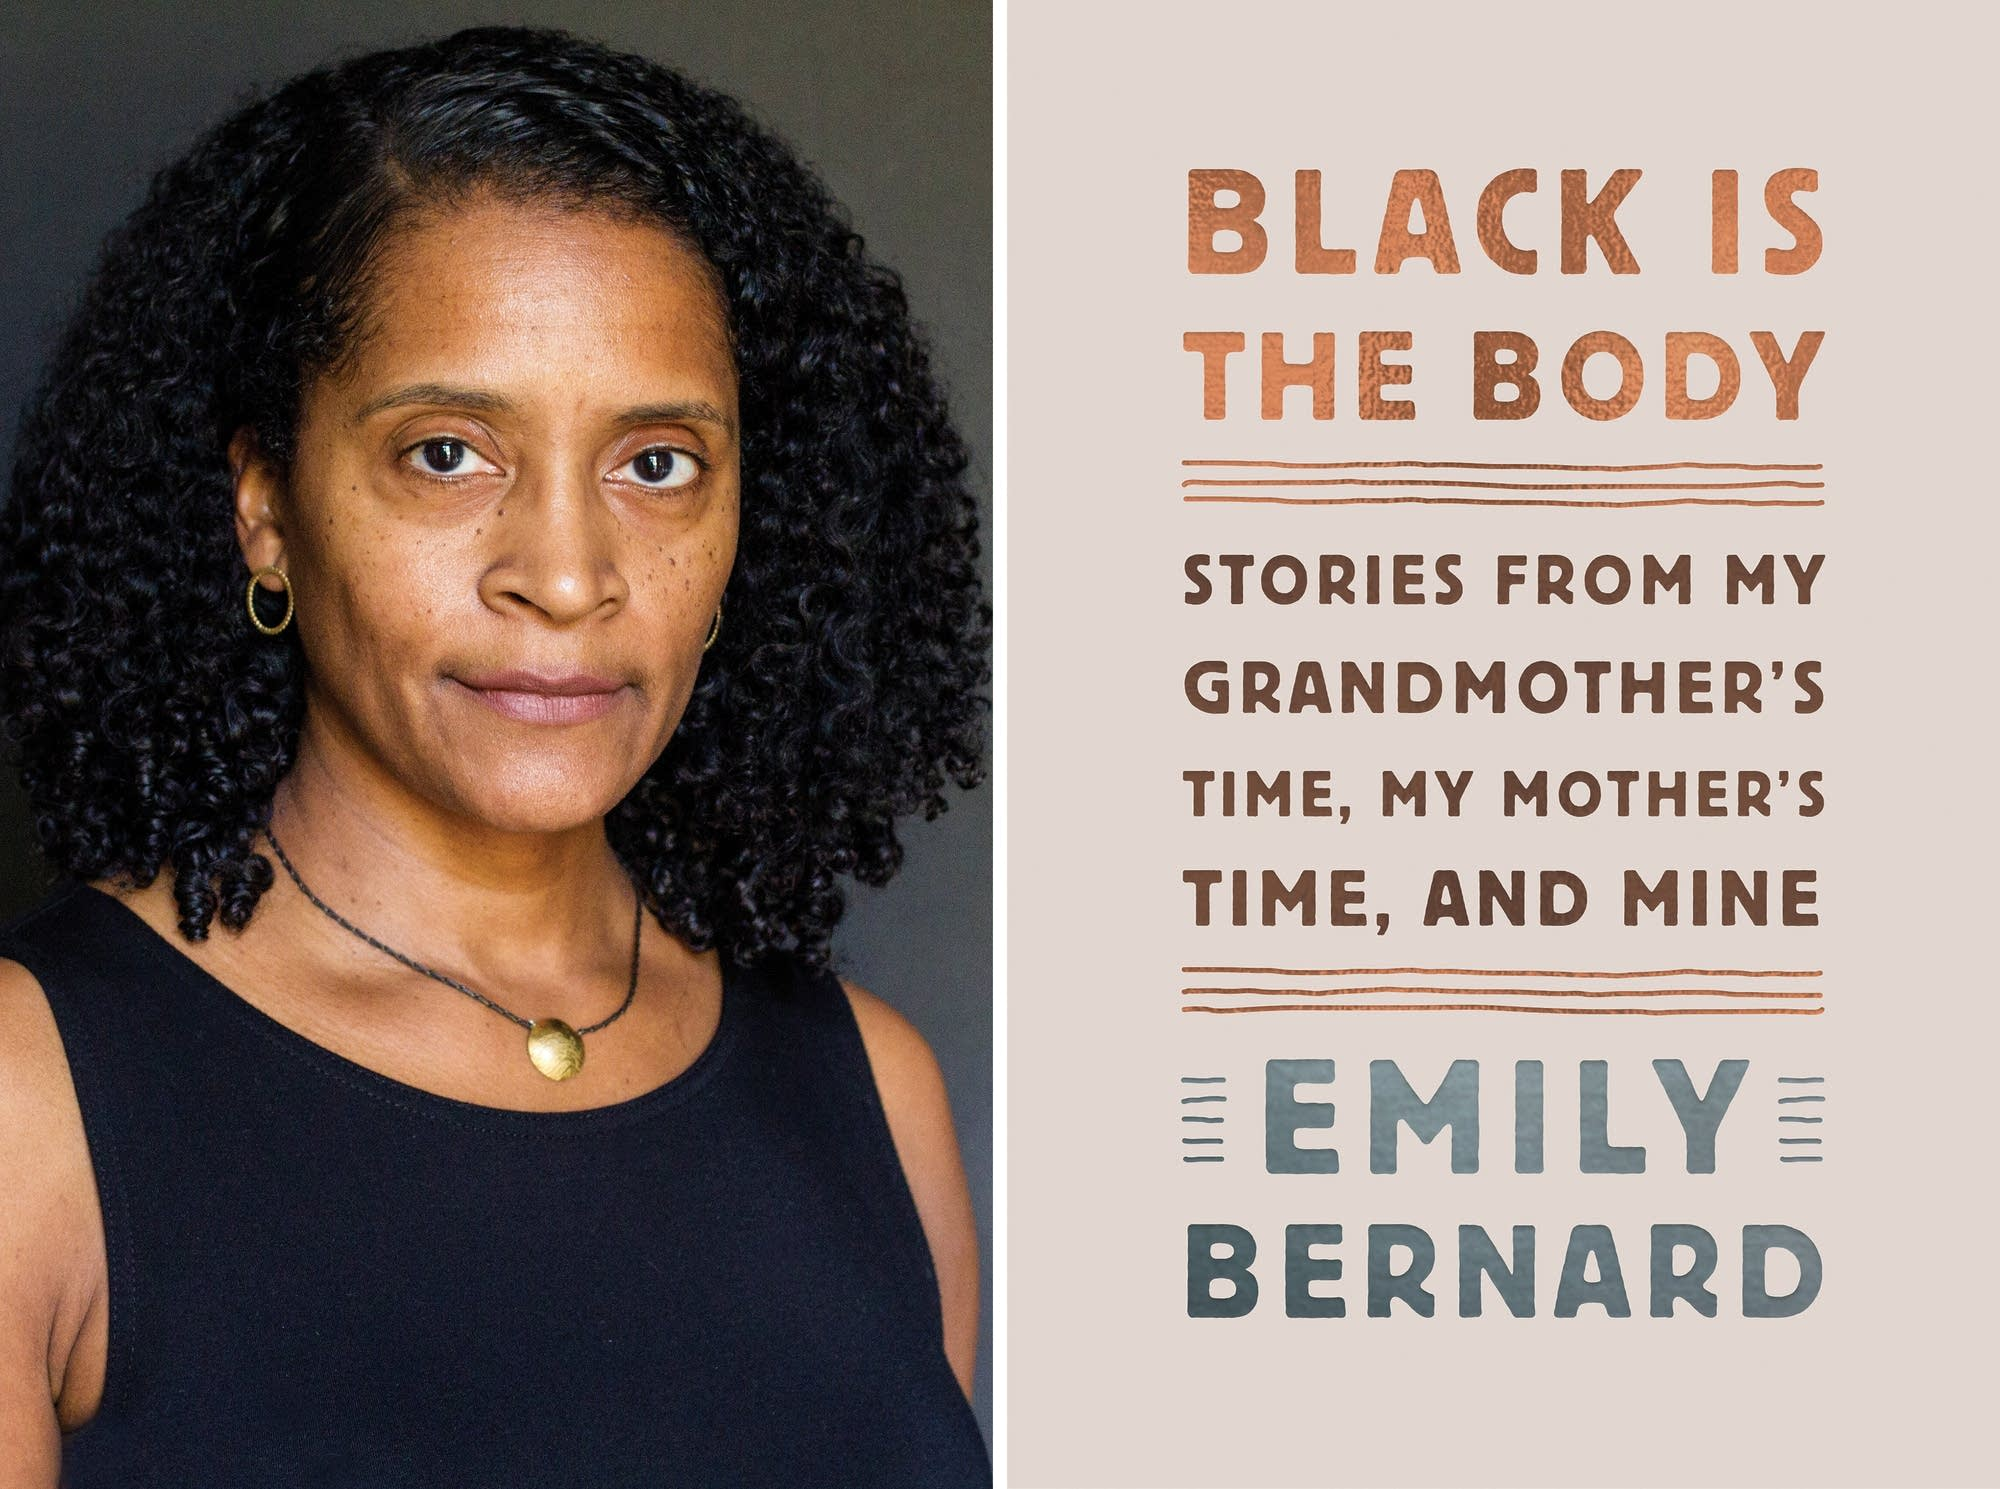 Emily Bernard and her book 'Black is the Body.'